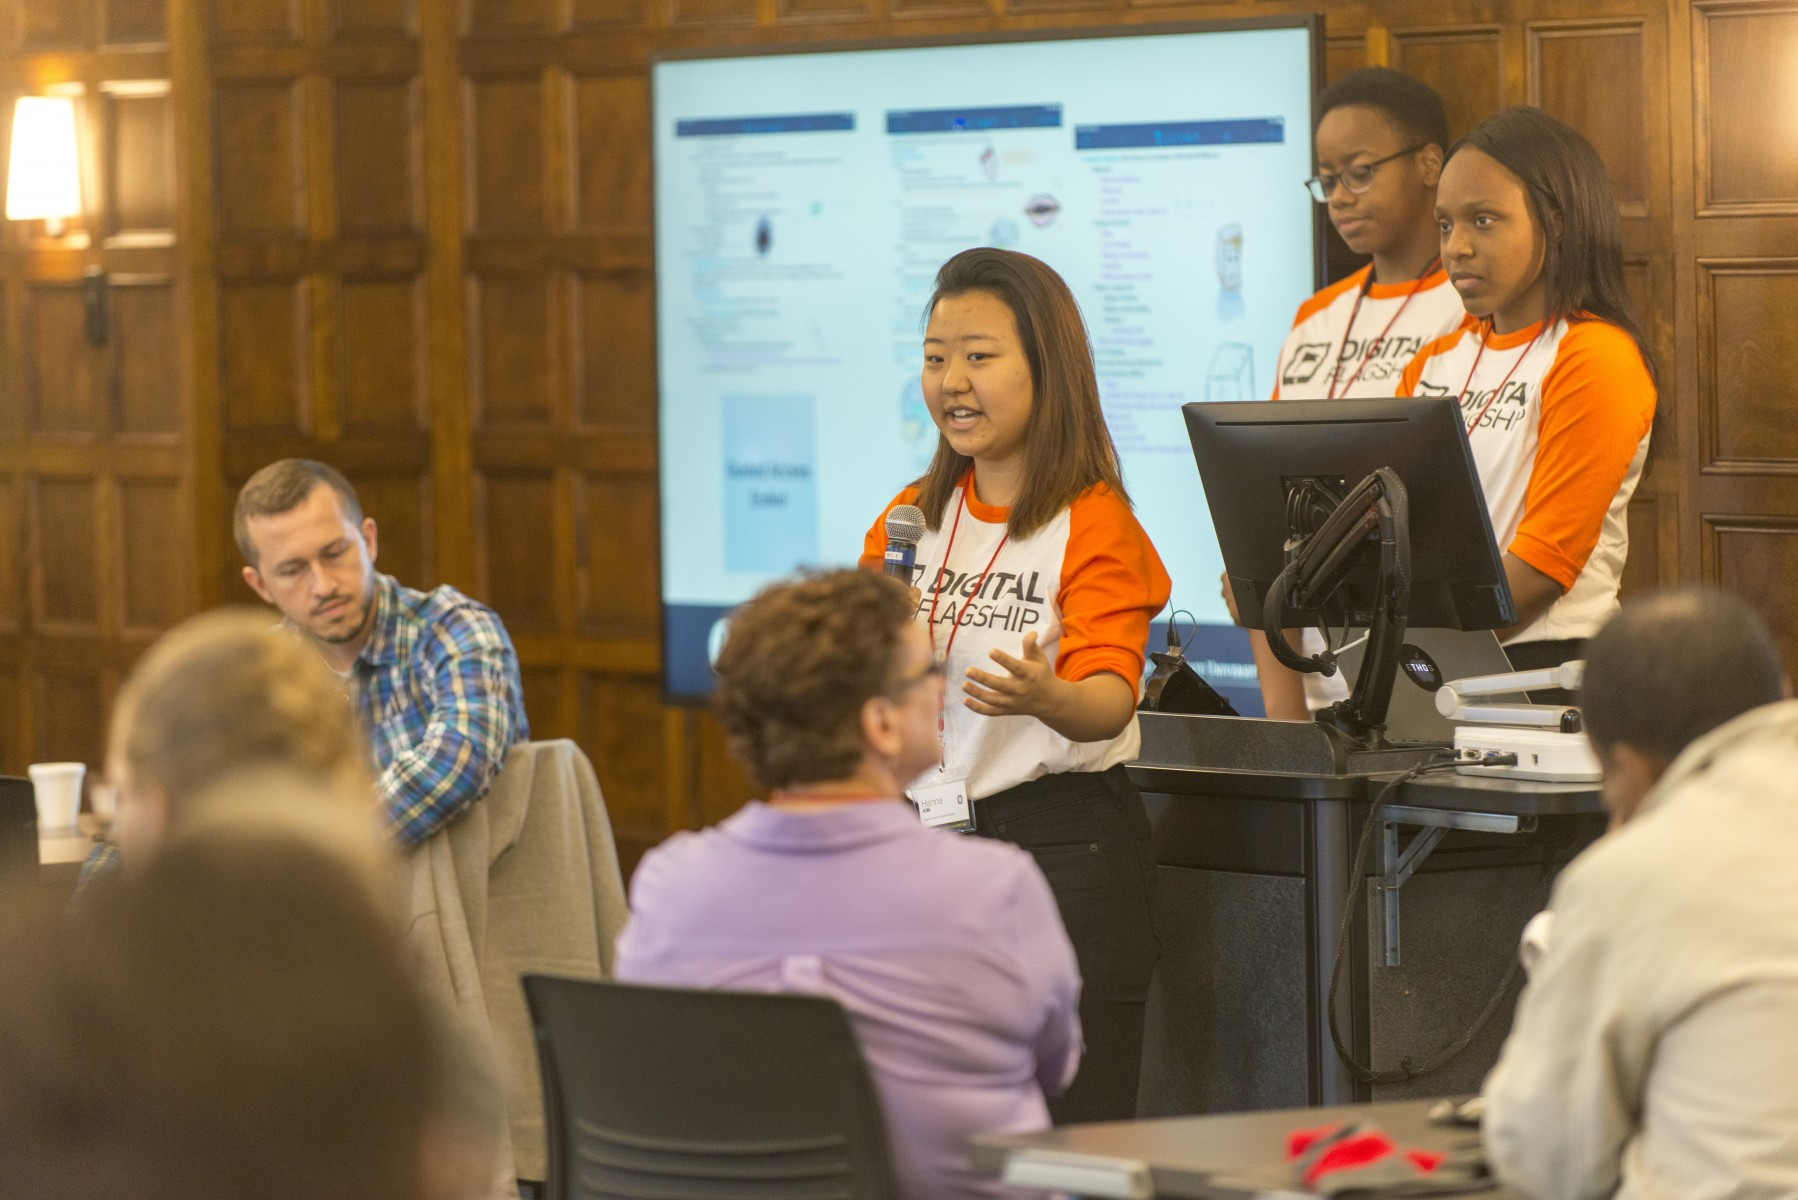 Digital Flagship students discuss their experience at the Innovate Faculty Showcase